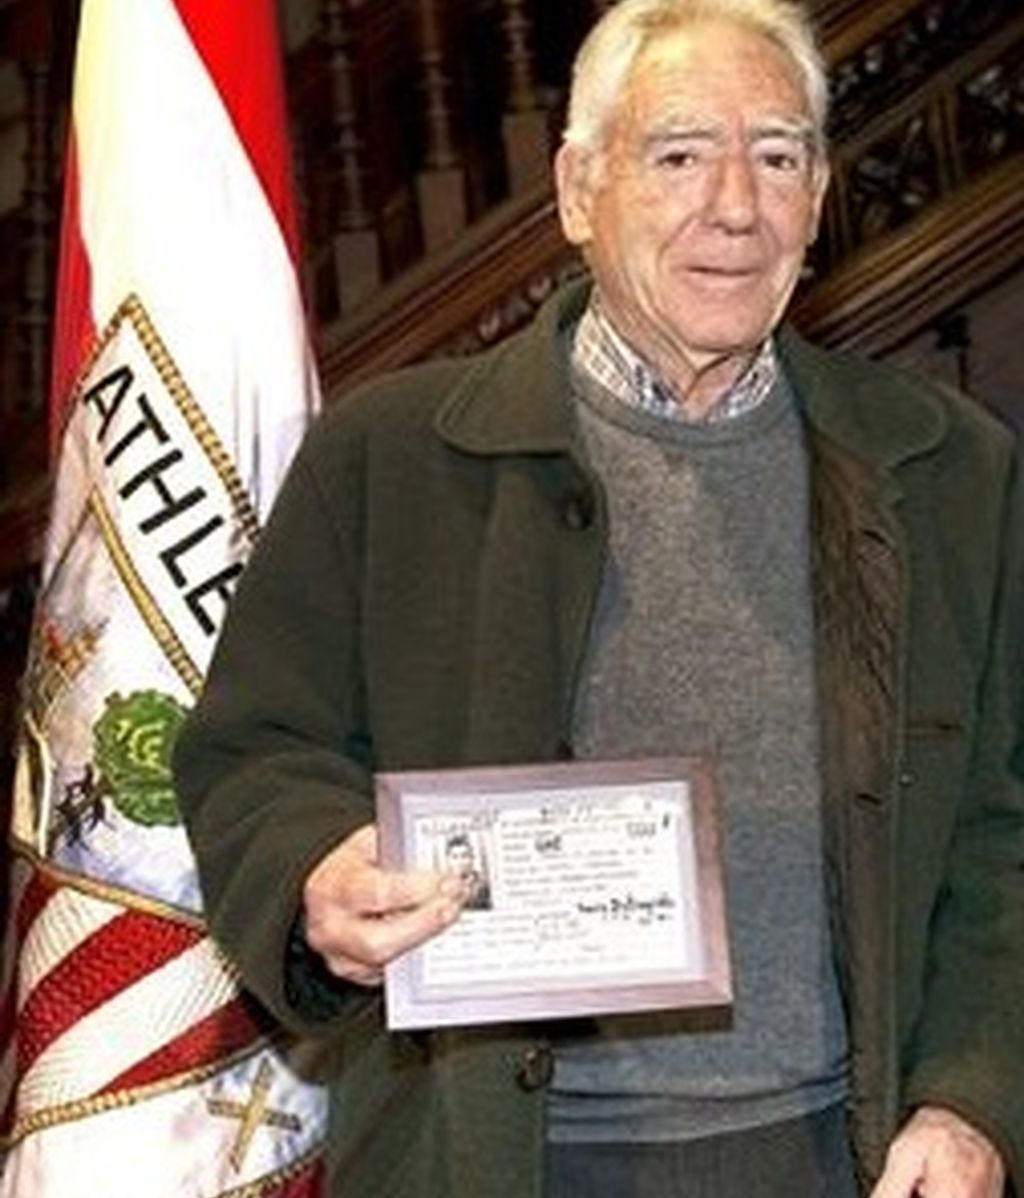 Fallece Artetxe, exdelantero del Athletic Club